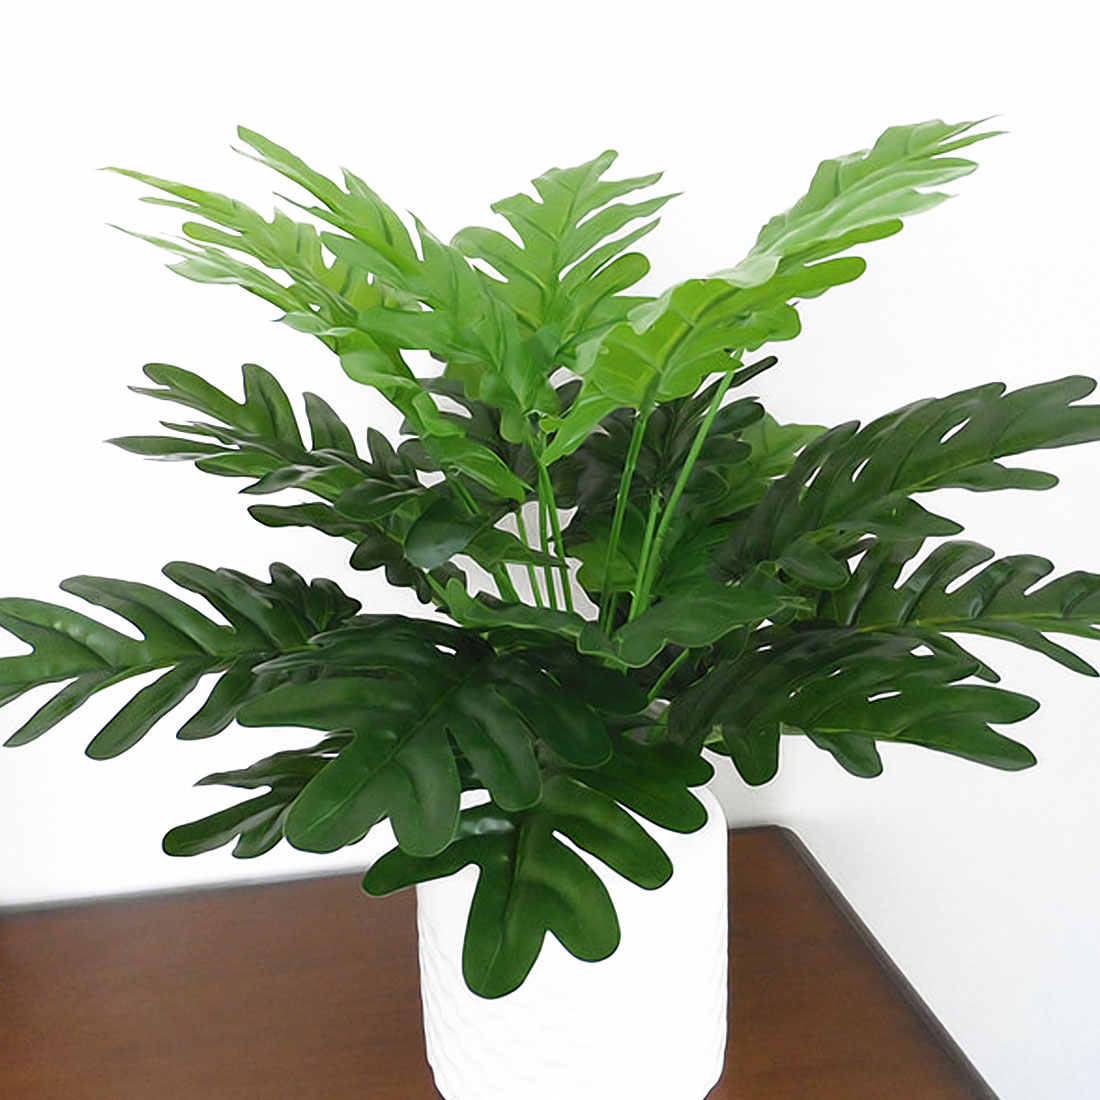 Green Artificial Leaves Leaf Plants Wall Material Decorative Fake Plants for Home Shop Garden Party